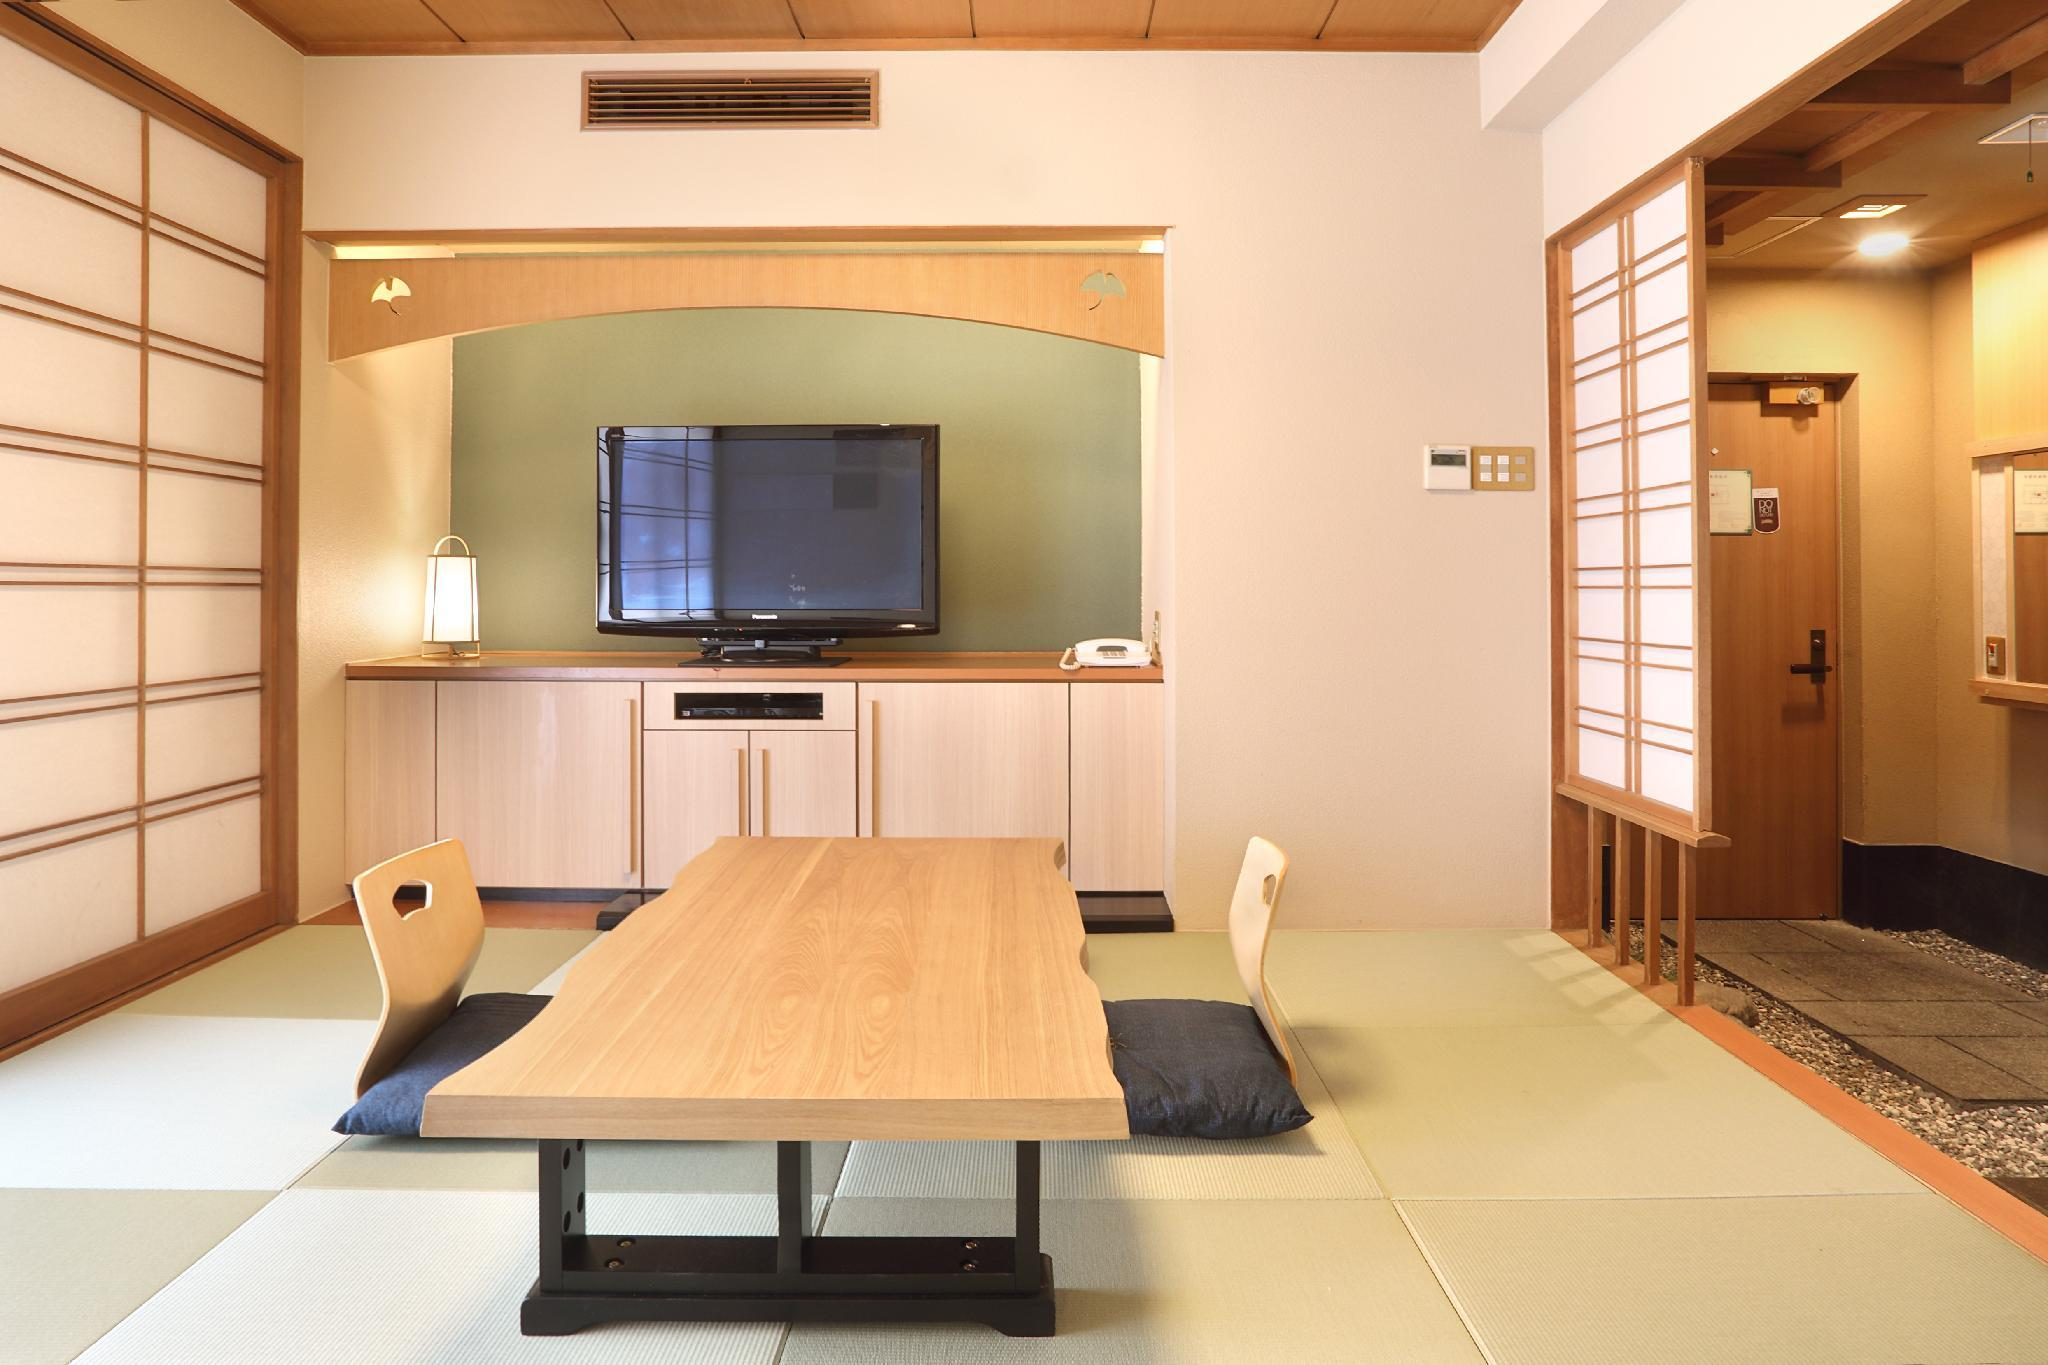 Standartinis kambarys su tatamio vieta (Standard Room With Tatami Area)